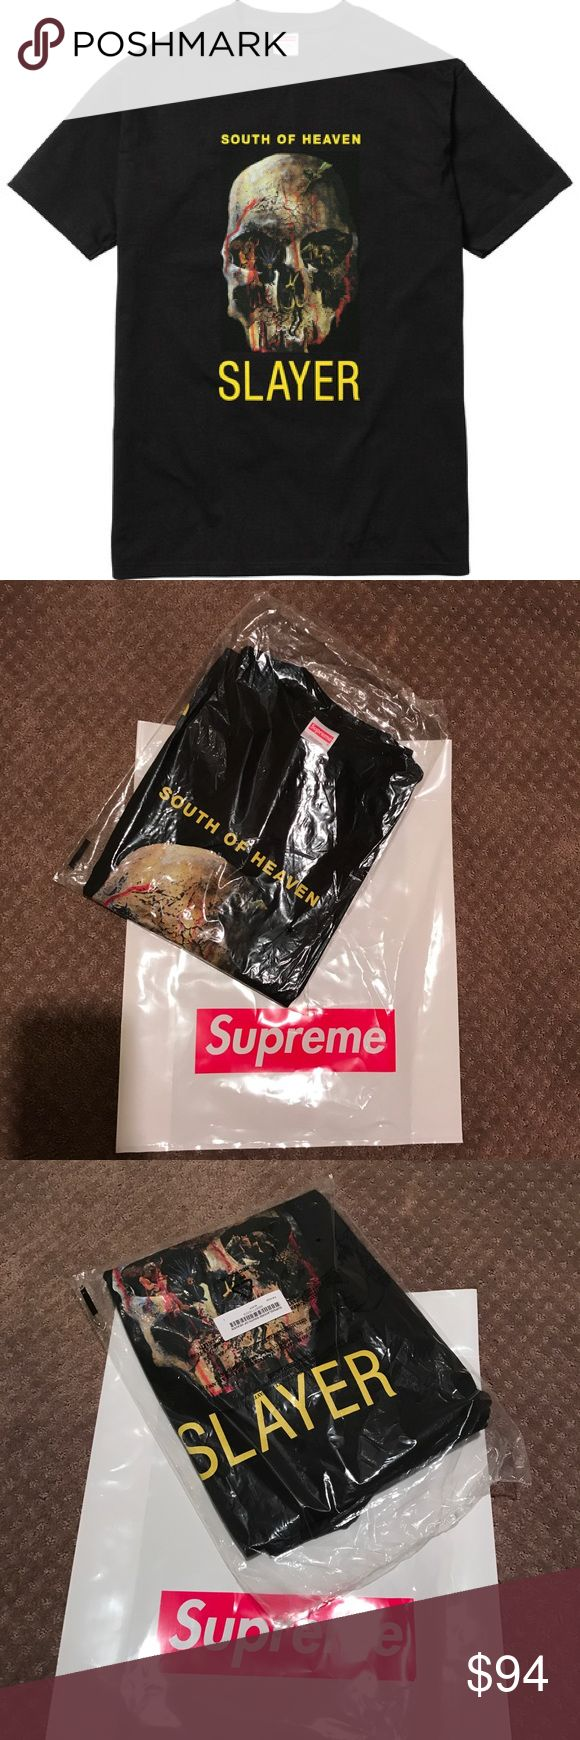 Supreme x Slayer South of Heaven L Brand new in bag never worn. 🚫NO TRADES🚫 Supreme Shirts Tees - Short Sleeve